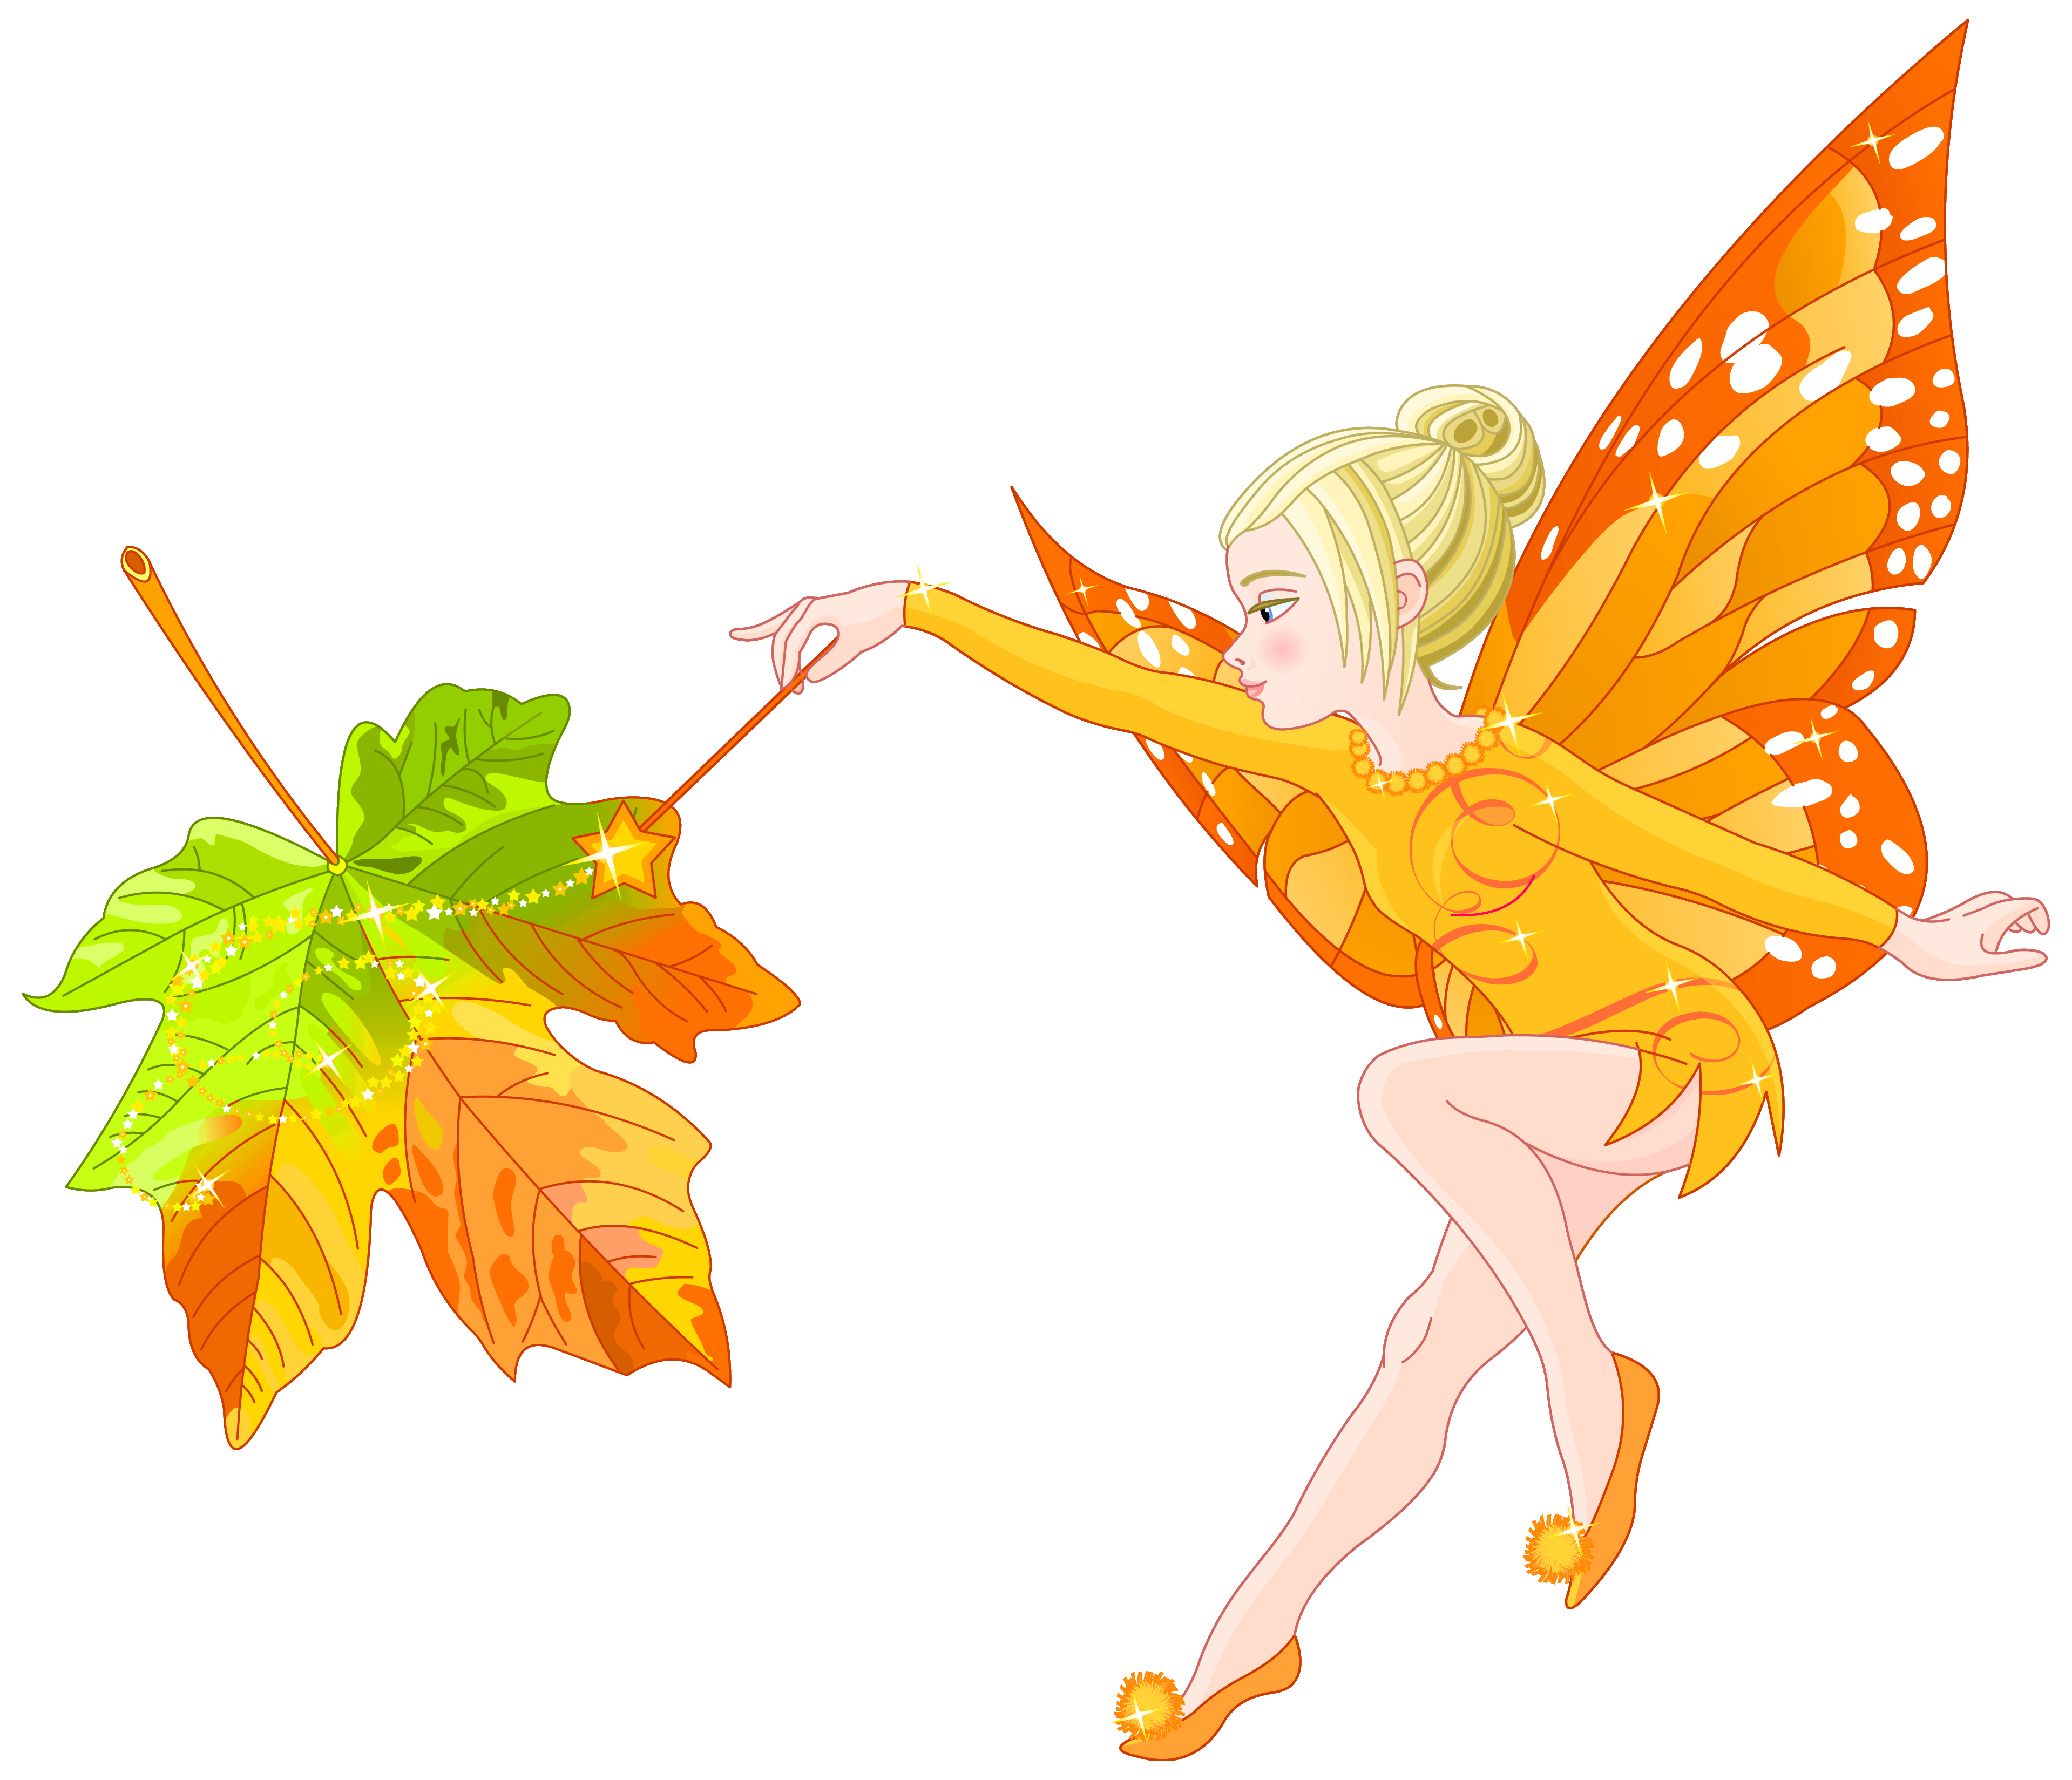 Fairy on a flower clipart clip art royalty free Autumn Fairy PNG Clipart Image | Gallery Yopriceville - High ... clip art royalty free